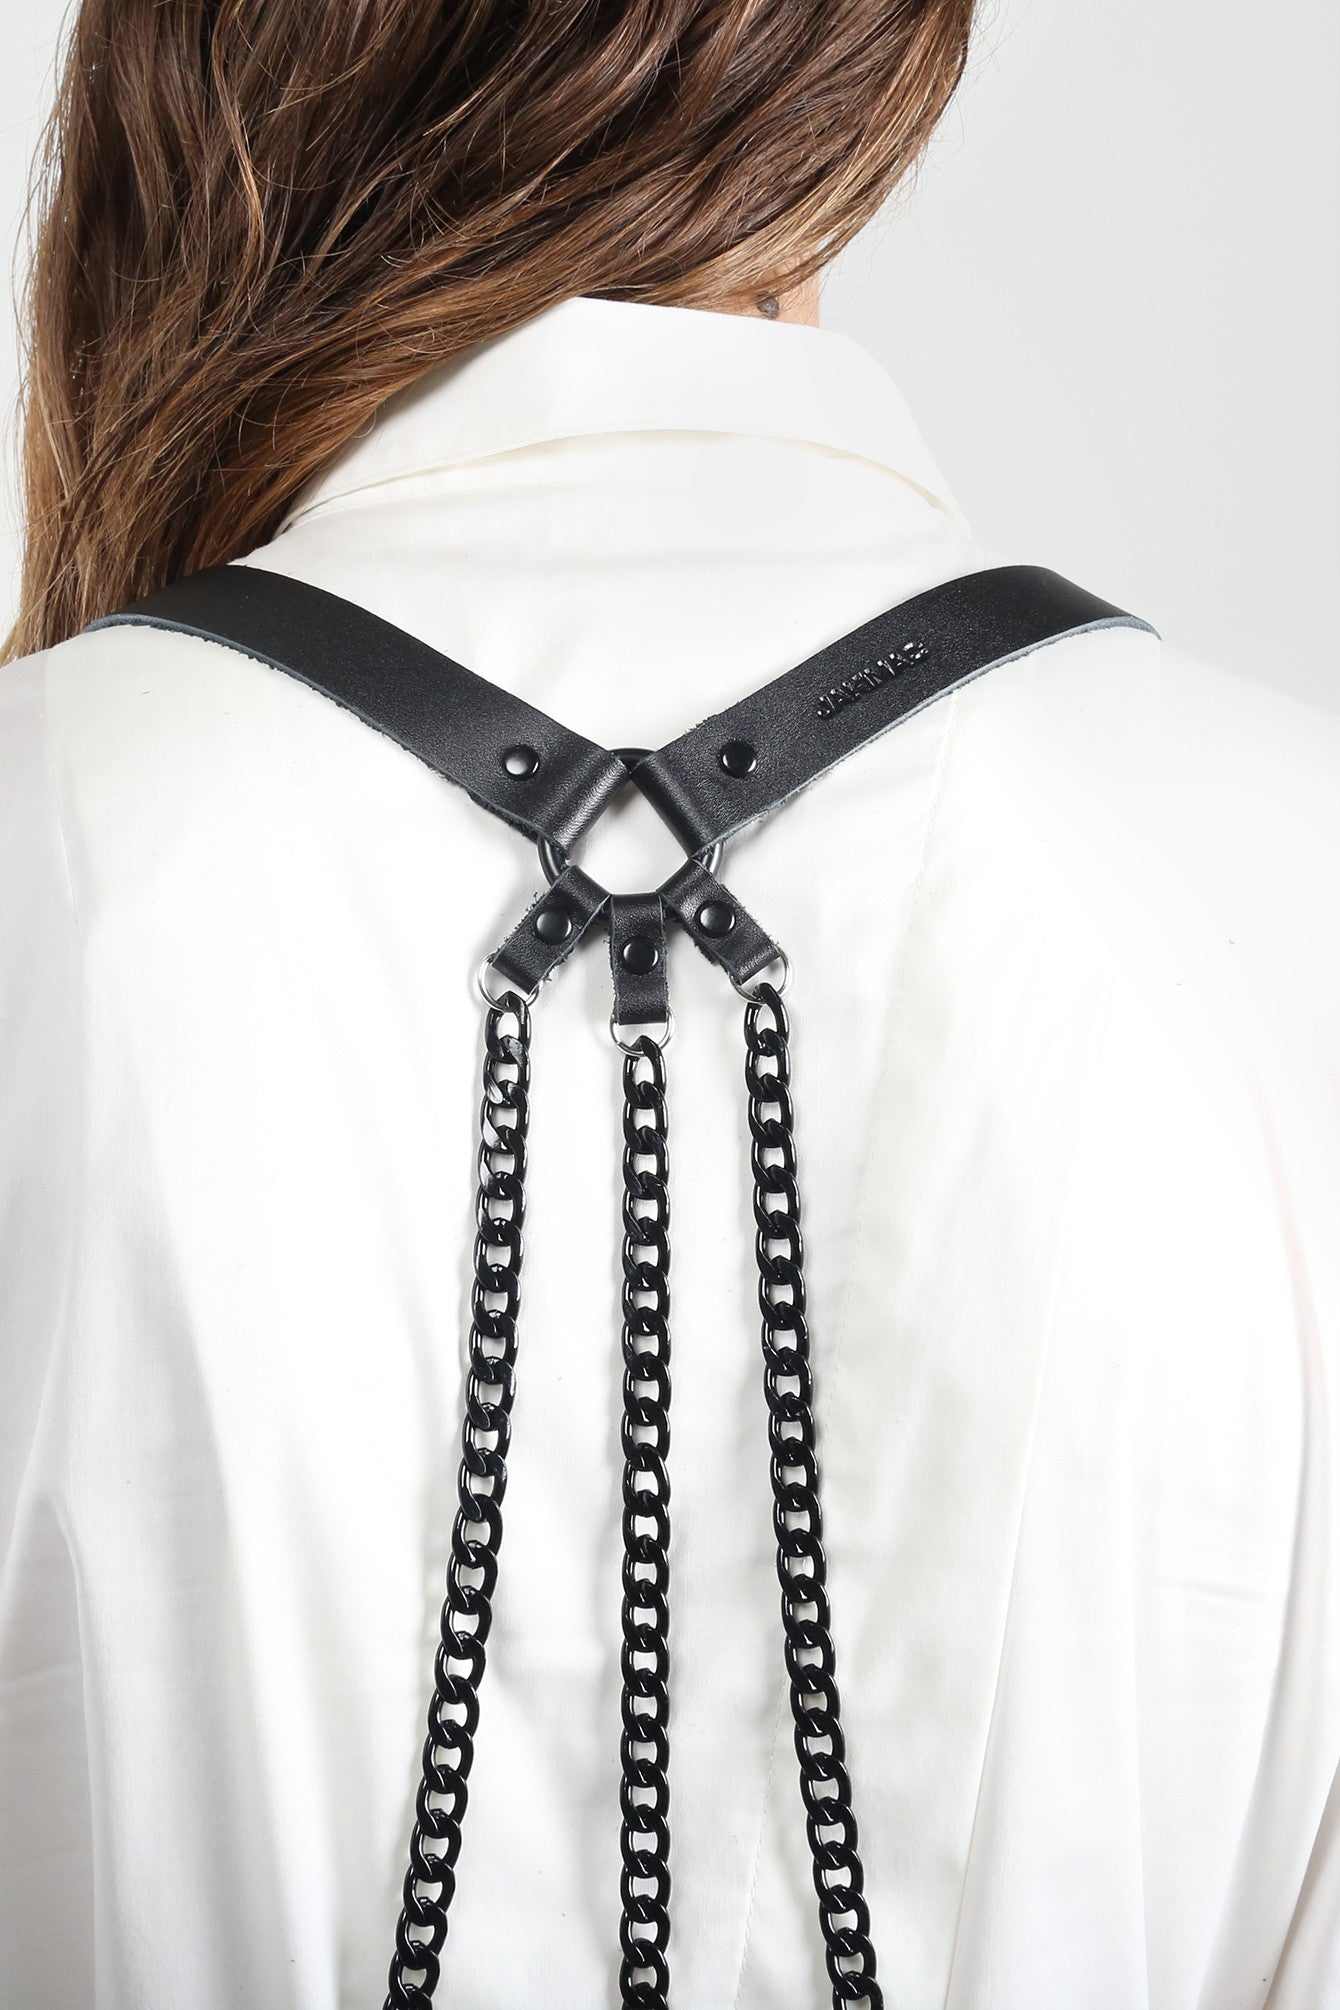 Triple Chain Harness - JAKIMAC  - 3